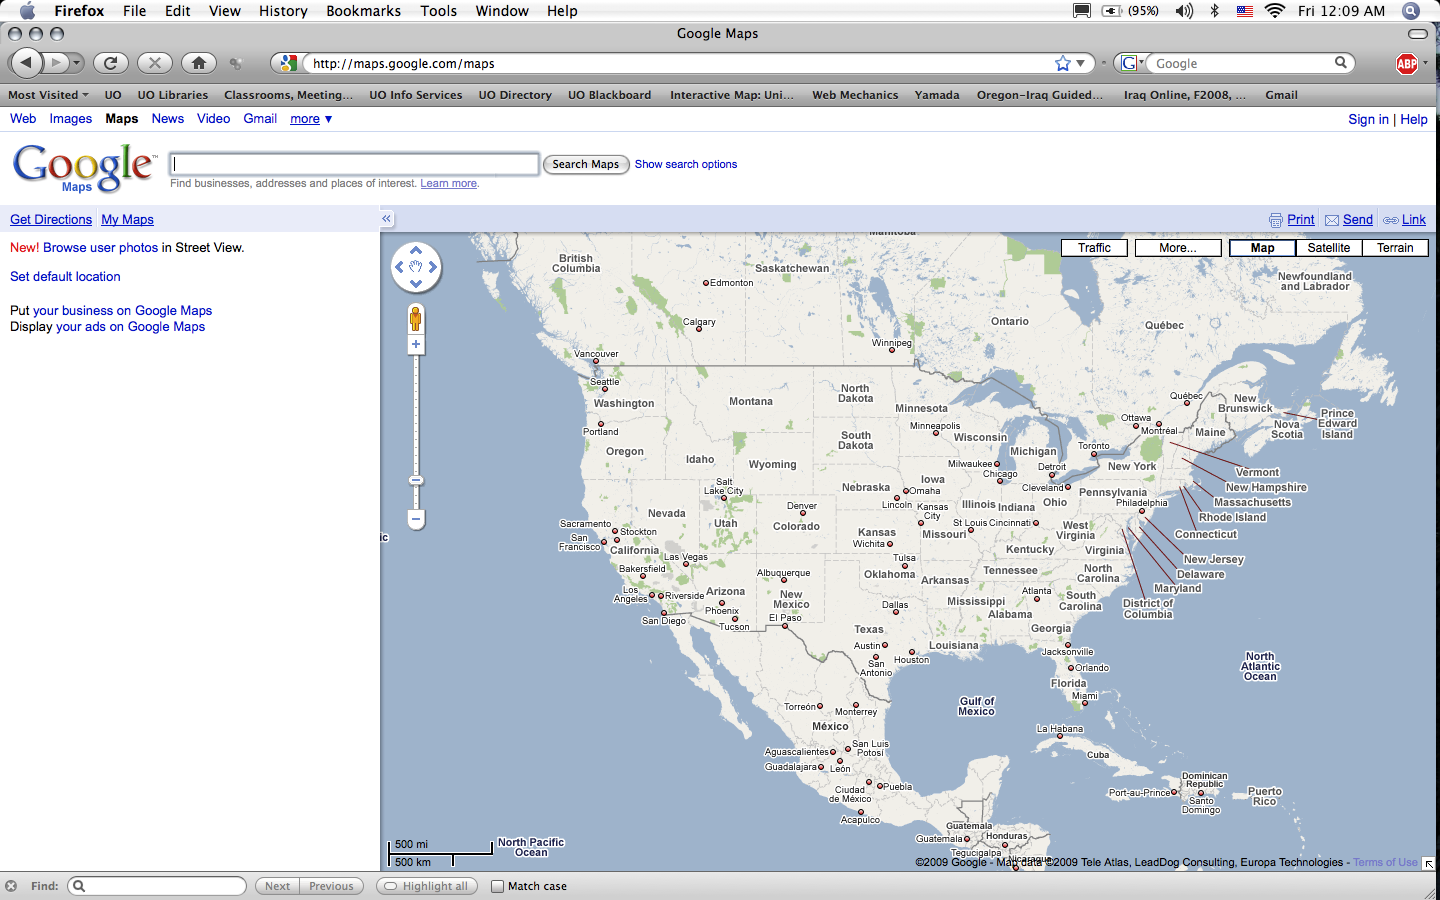 Google Maps redesign showing US map (2009)